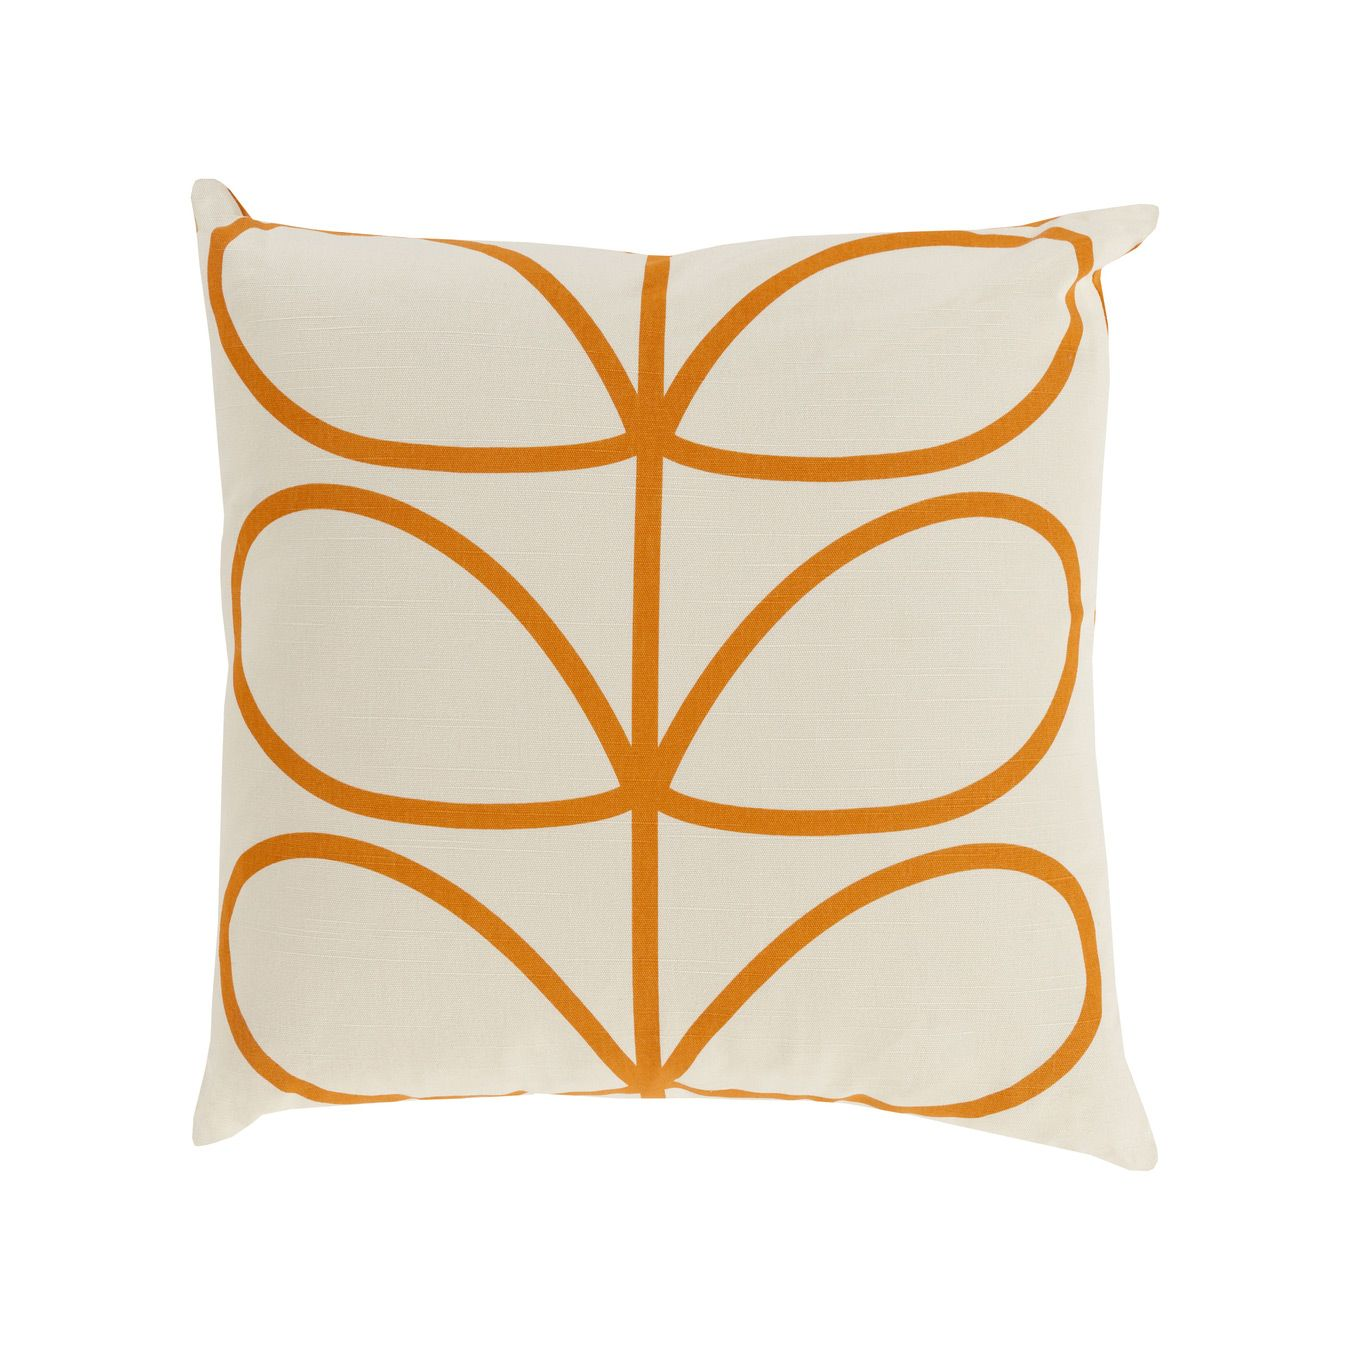 Add whimsical interest to your space with this throw pillow made in